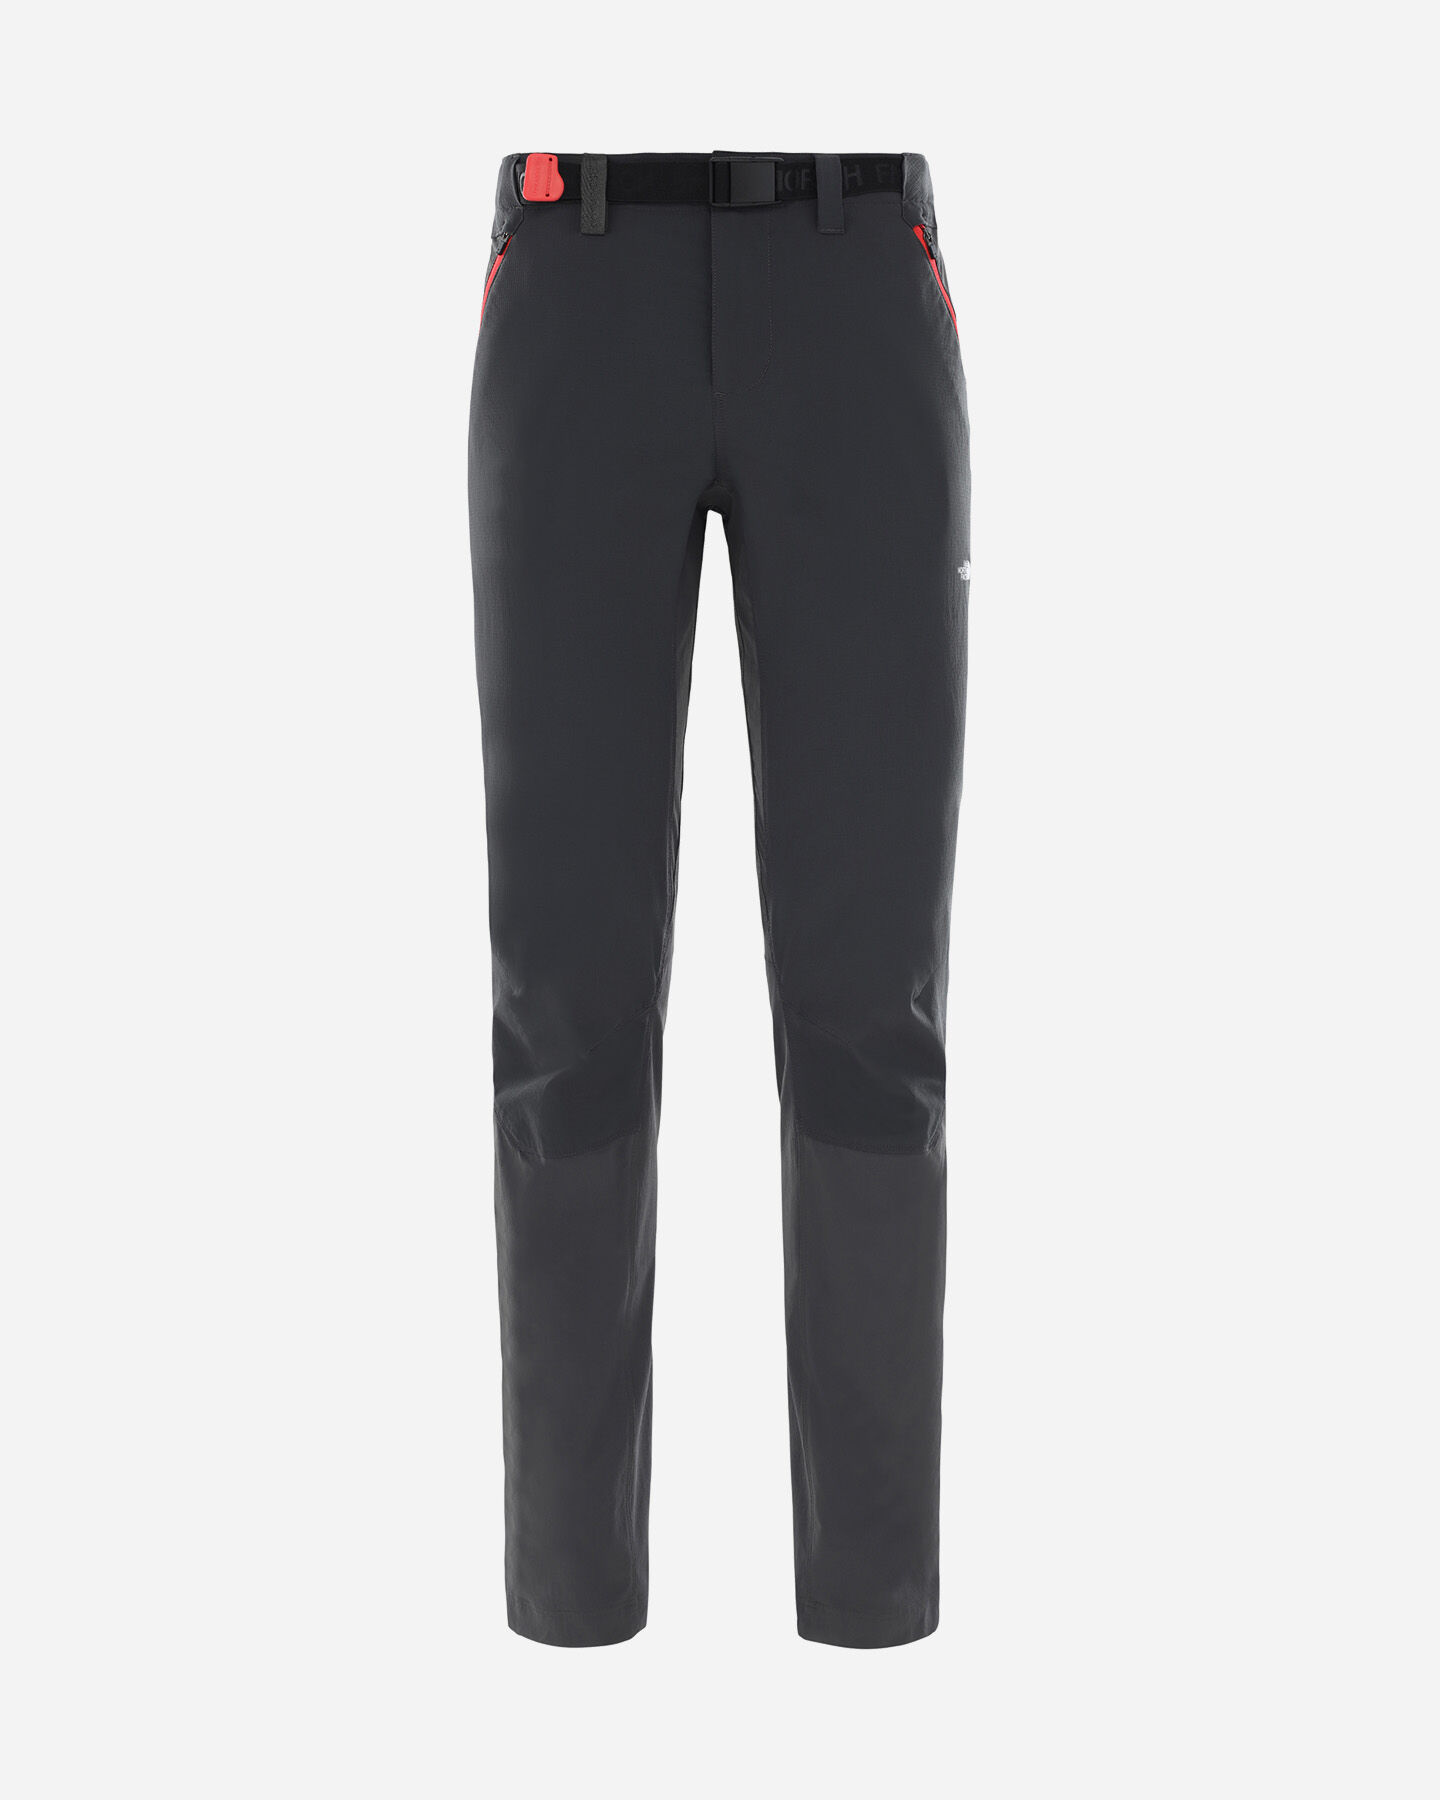 Pantalone outdoor THE NORTH FACE SPEEDLIGHT II W S5192893 scatto 0